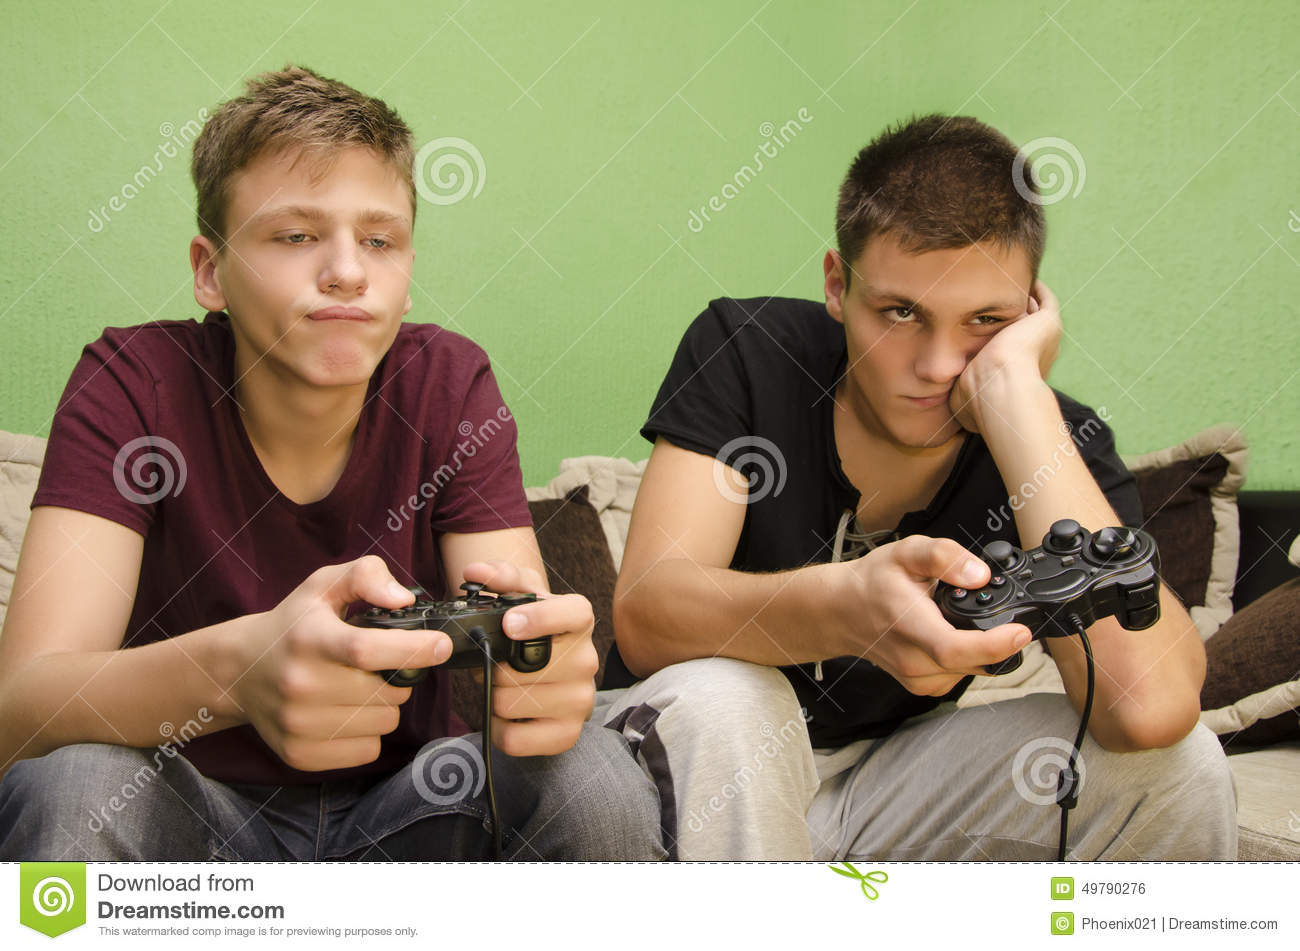 Brothers playing video games boredom